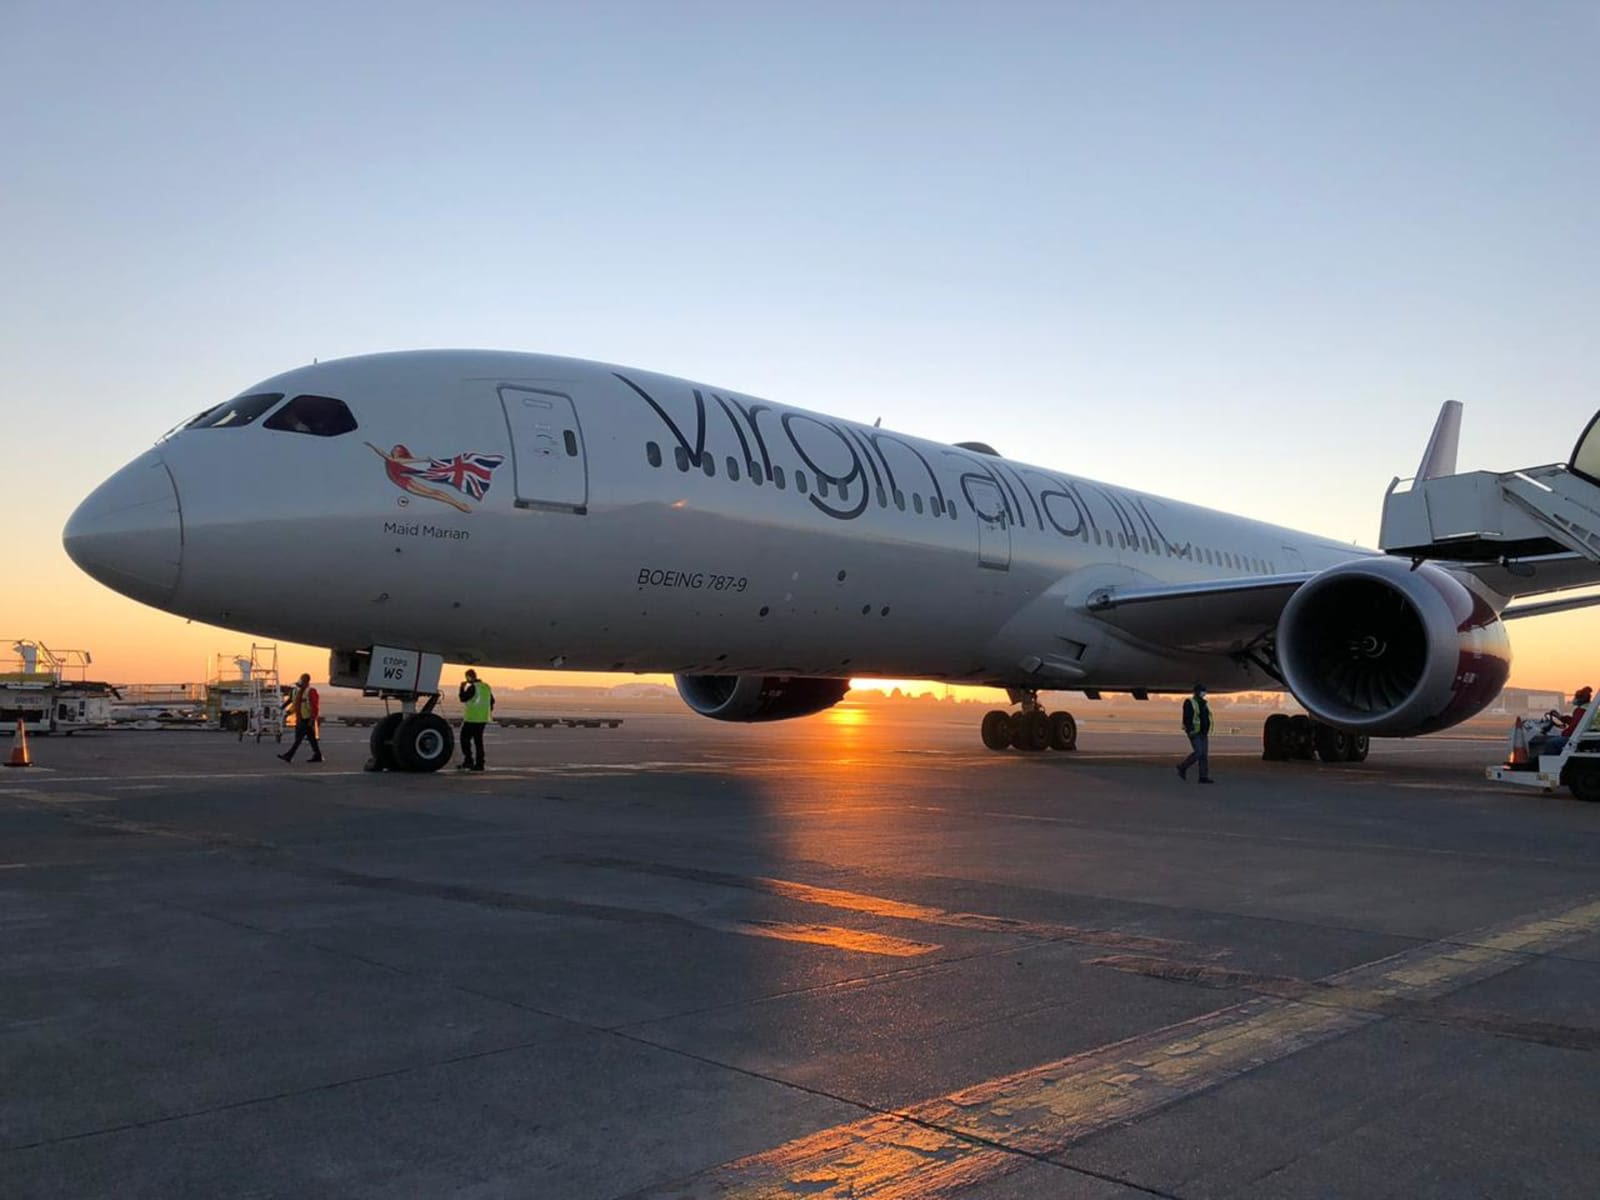 Virgin Atlantic plane flying supplies to Africa